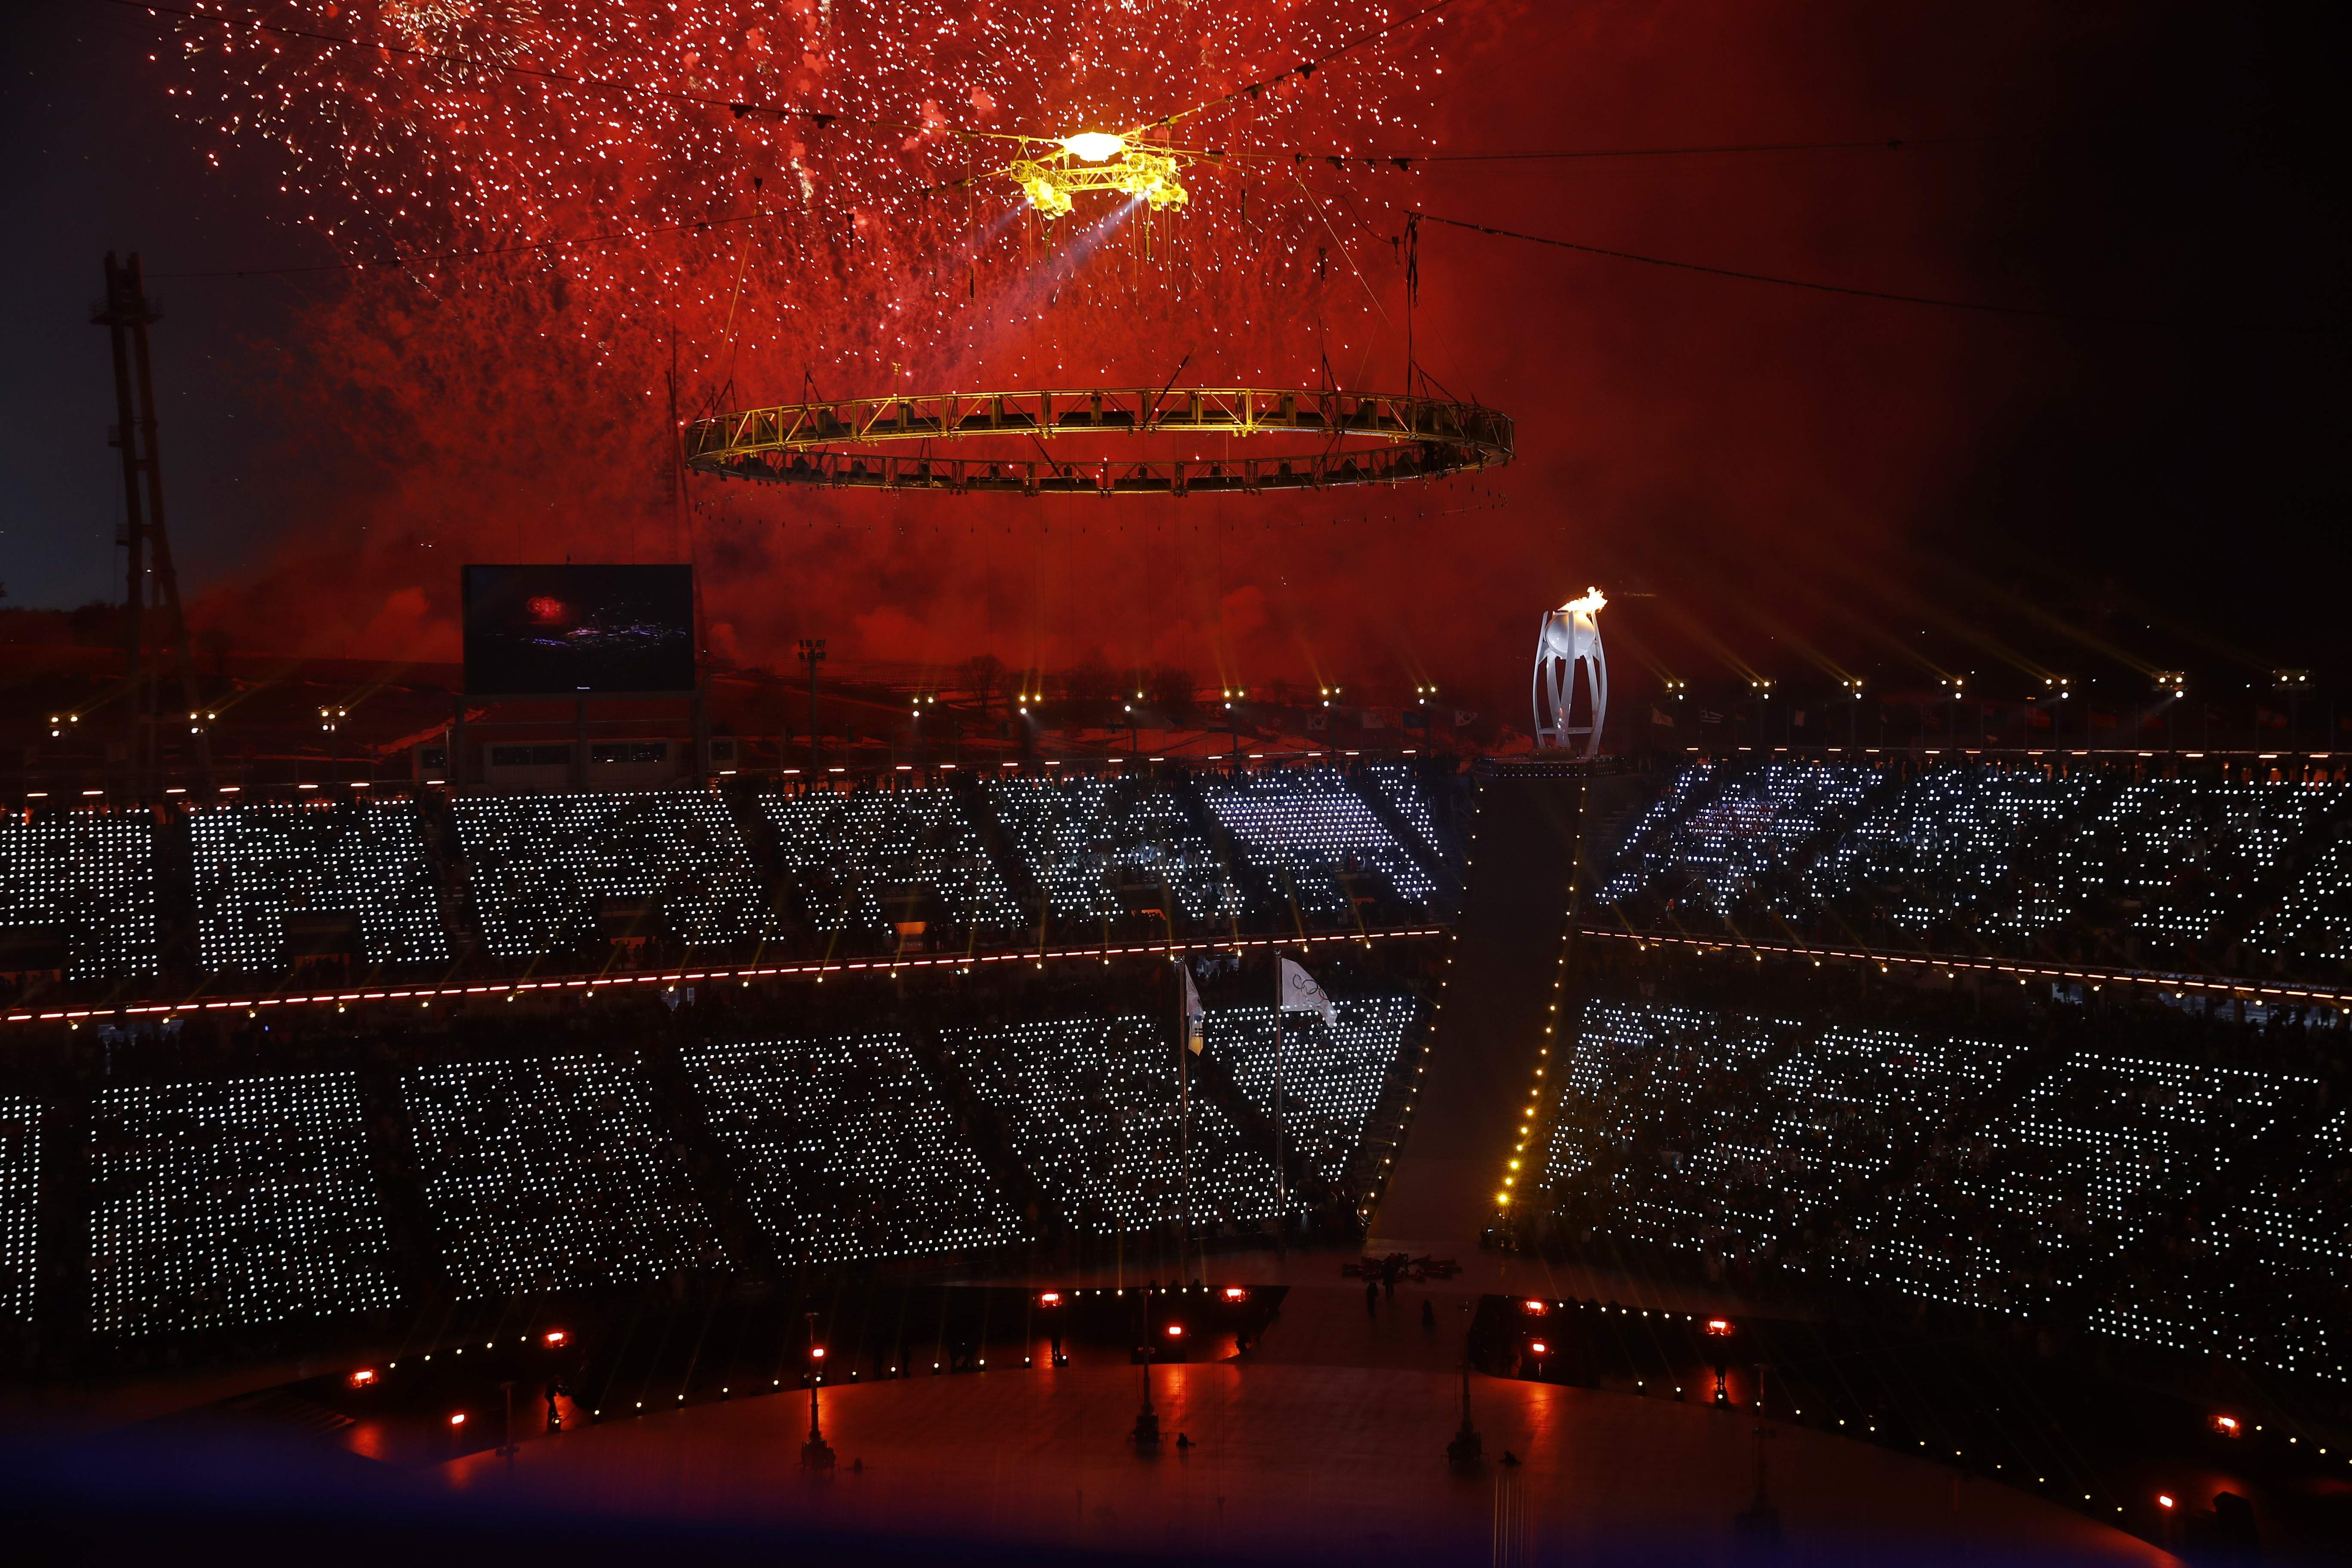 Flames burn in the Olympic cauldron during the opening ceremony of the 2018 Winter Olympics in Pyeongchang, South Korea, Friday, Feb. 9, 2018. (AP Photo/Charlie Riedel)